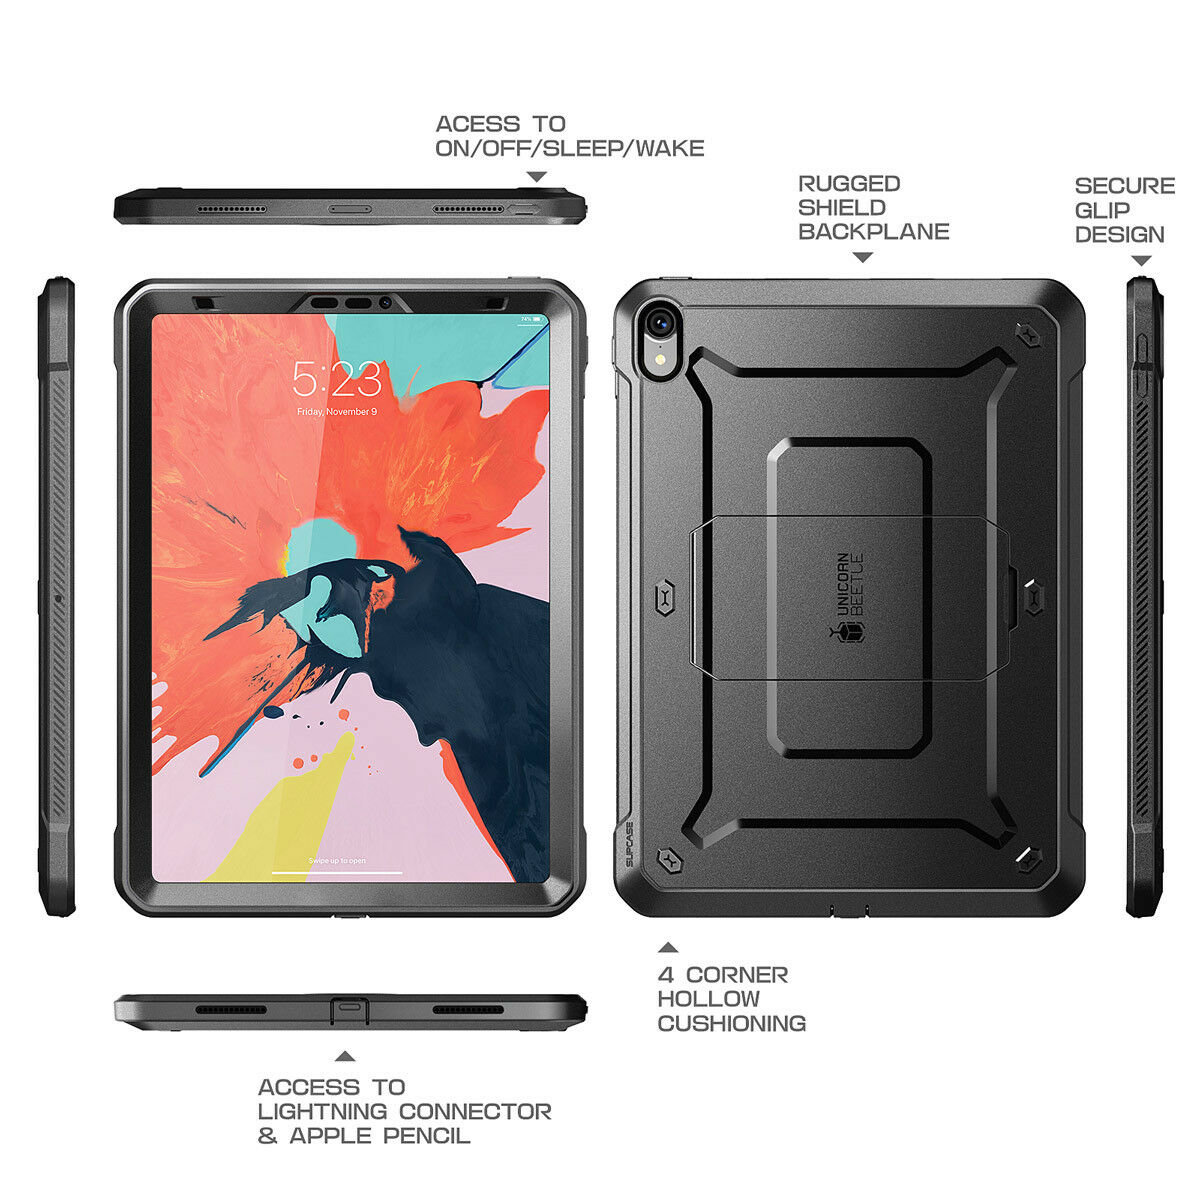 finest selection 89a21 a057d Details about For iPad Pro 12.9 Case 2018, SUPCASE Full-Body Protective  Case+Screen Protector